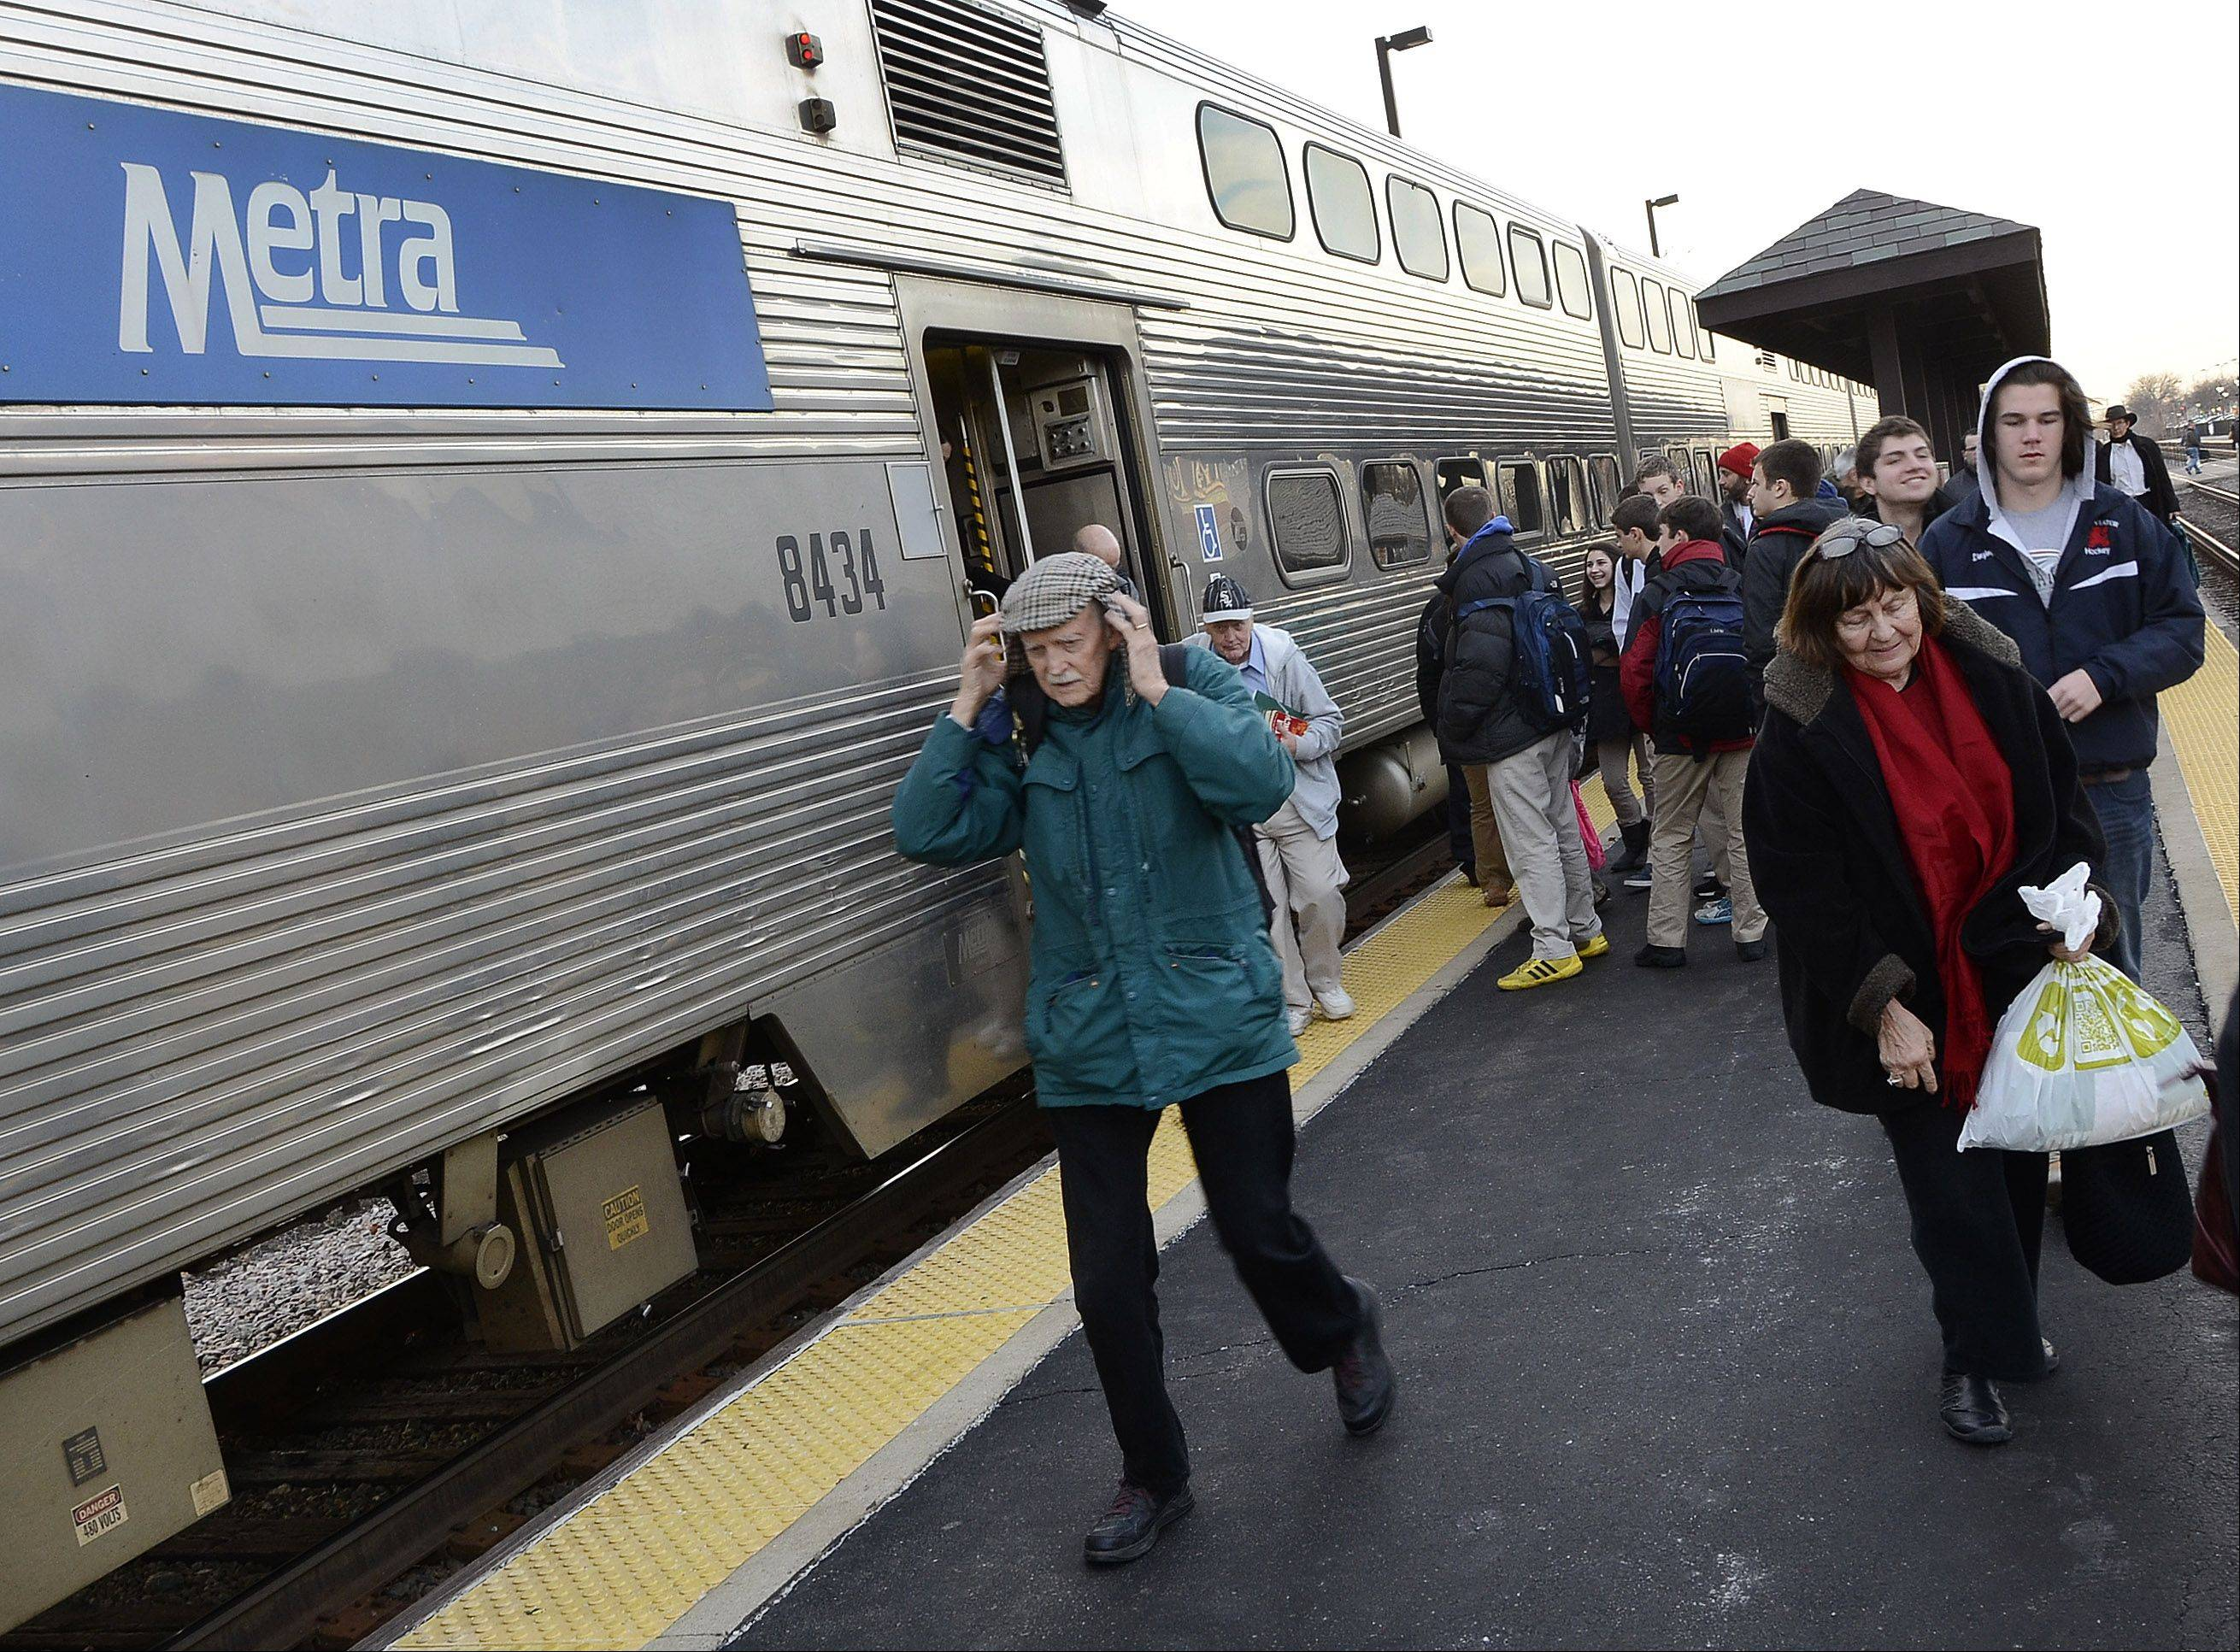 Metra commuters exiting the outbound train from Chicago at the Arlington Heights station Friday will see increases in 10-ride passes effective in February.